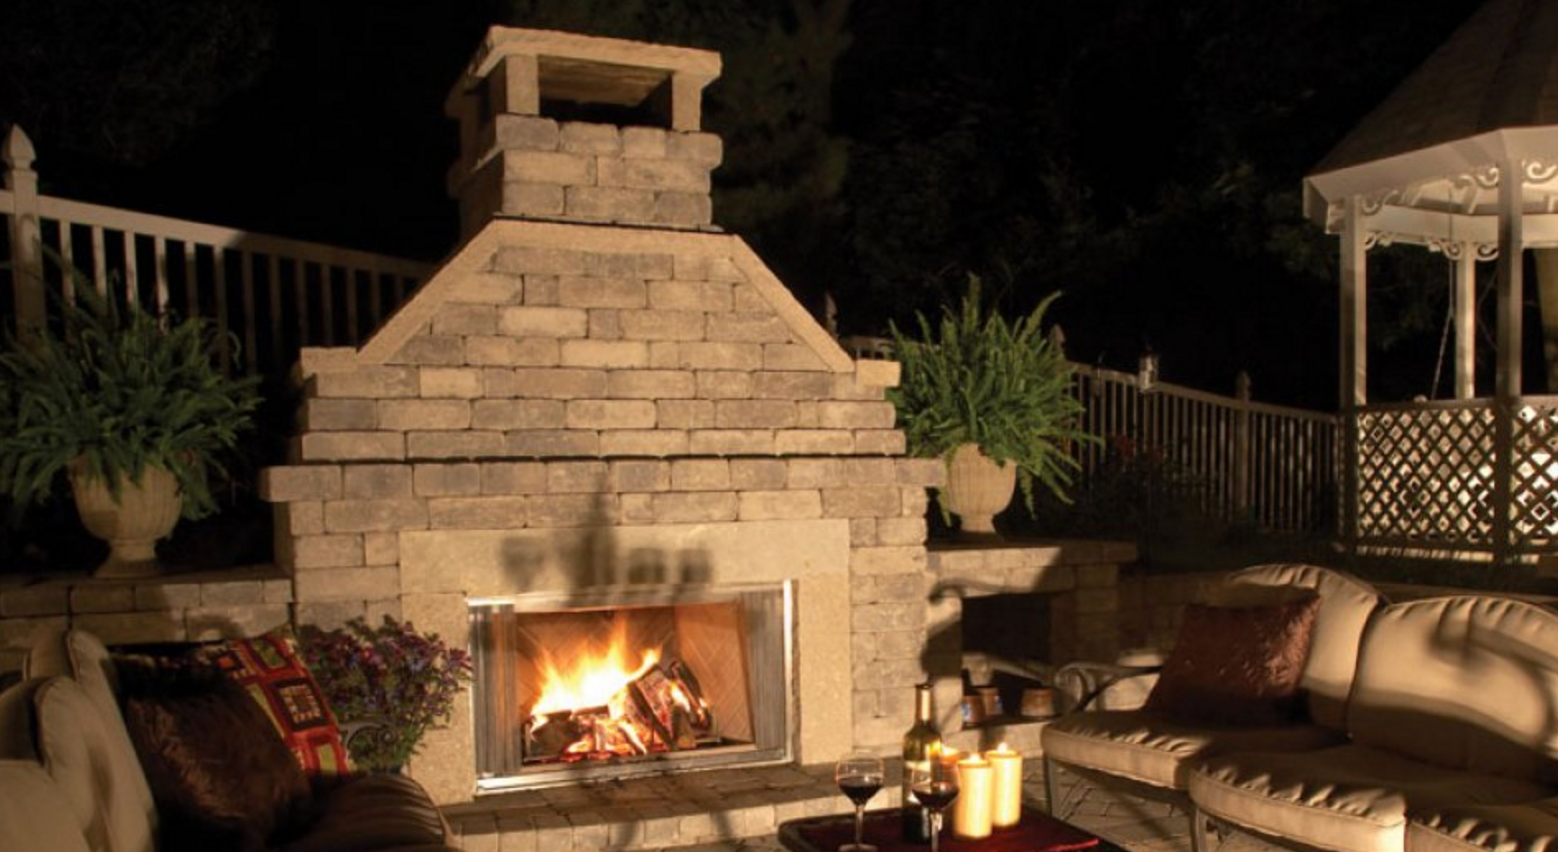 outdoor fireplace design and ideas for NY, CT, PA, NJ